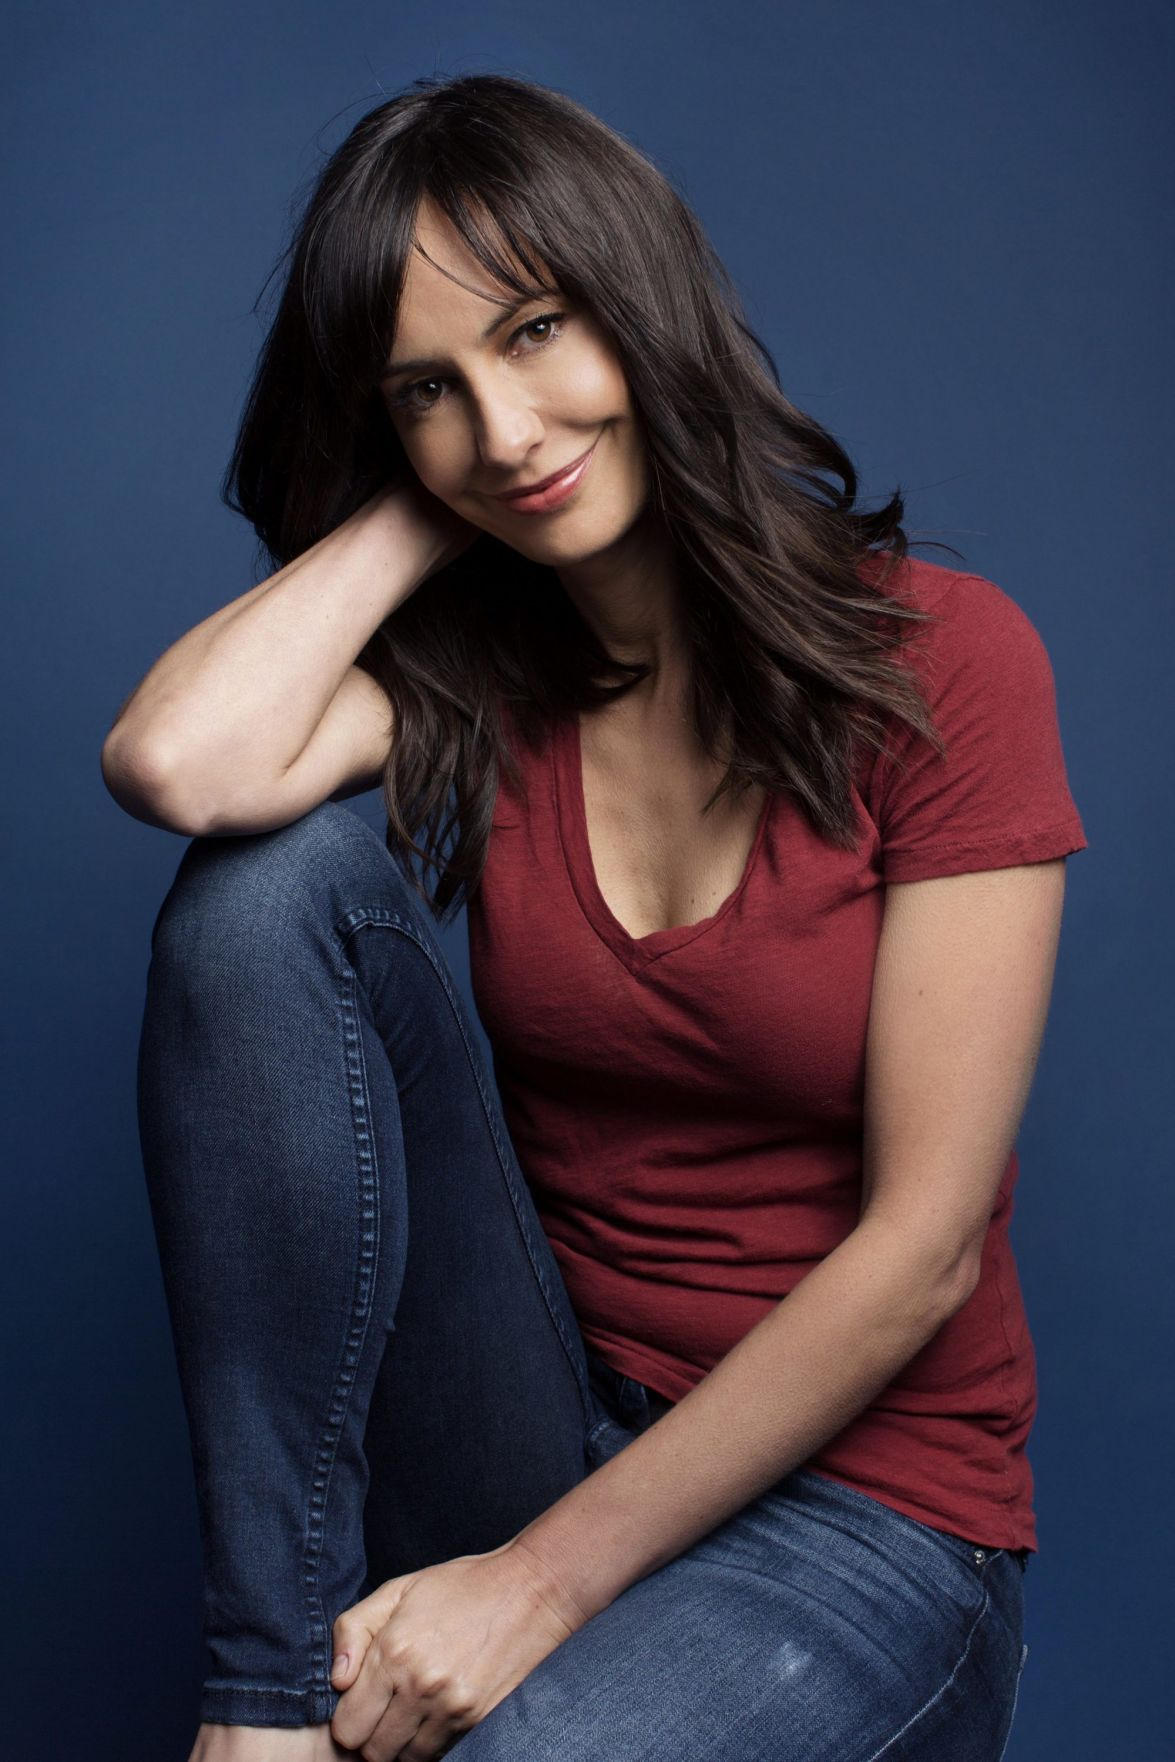 Buffalo-born actress Charlene Amoia lands role on 'Grey's Anatomy' |  Entertainment | buffalonews.com